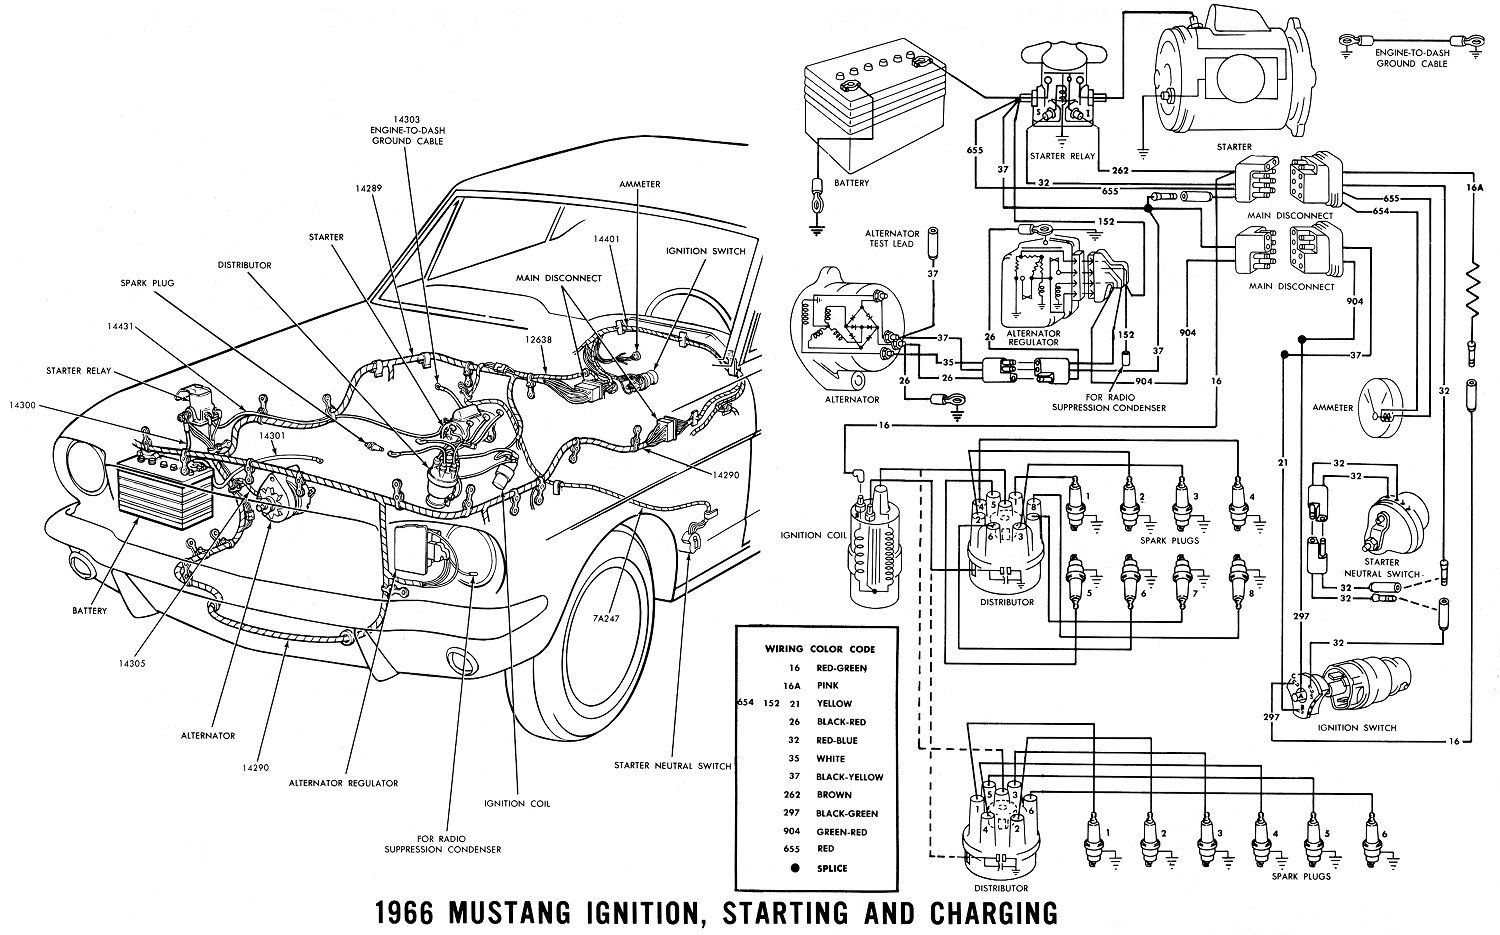 air tank schematics